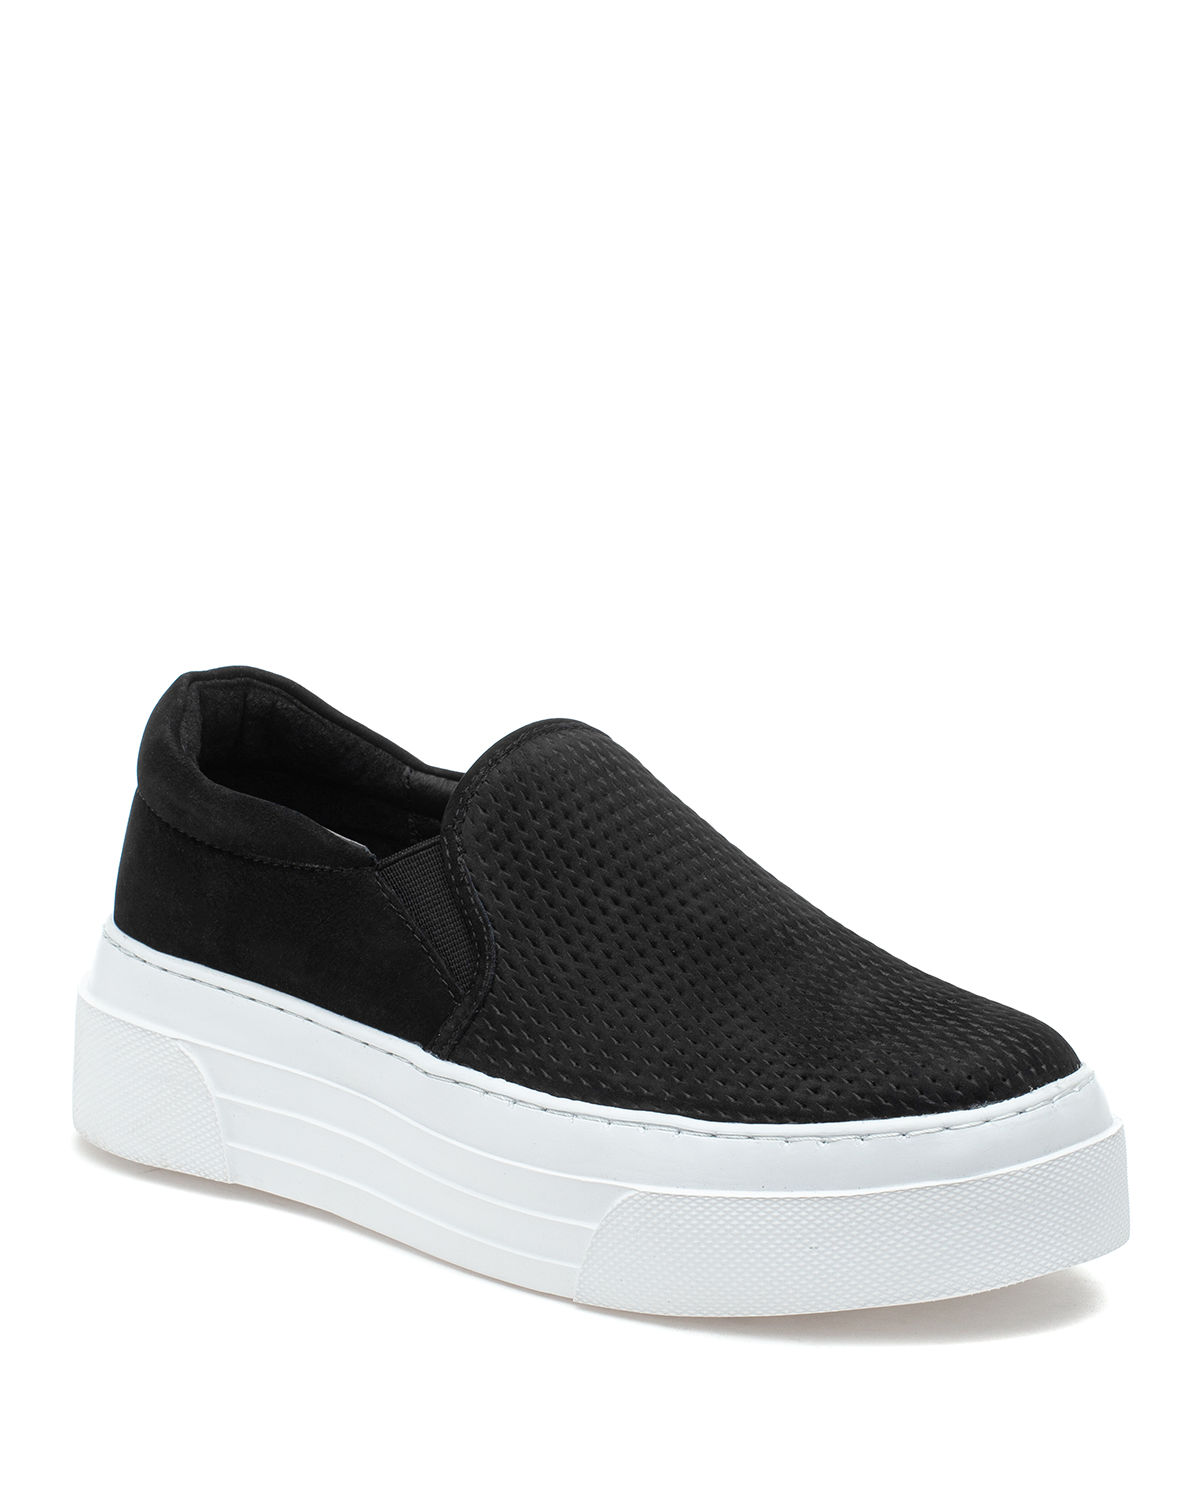 Jslides AILEEN PERFORATED LEATHER SLIP-ON SNEAKERS